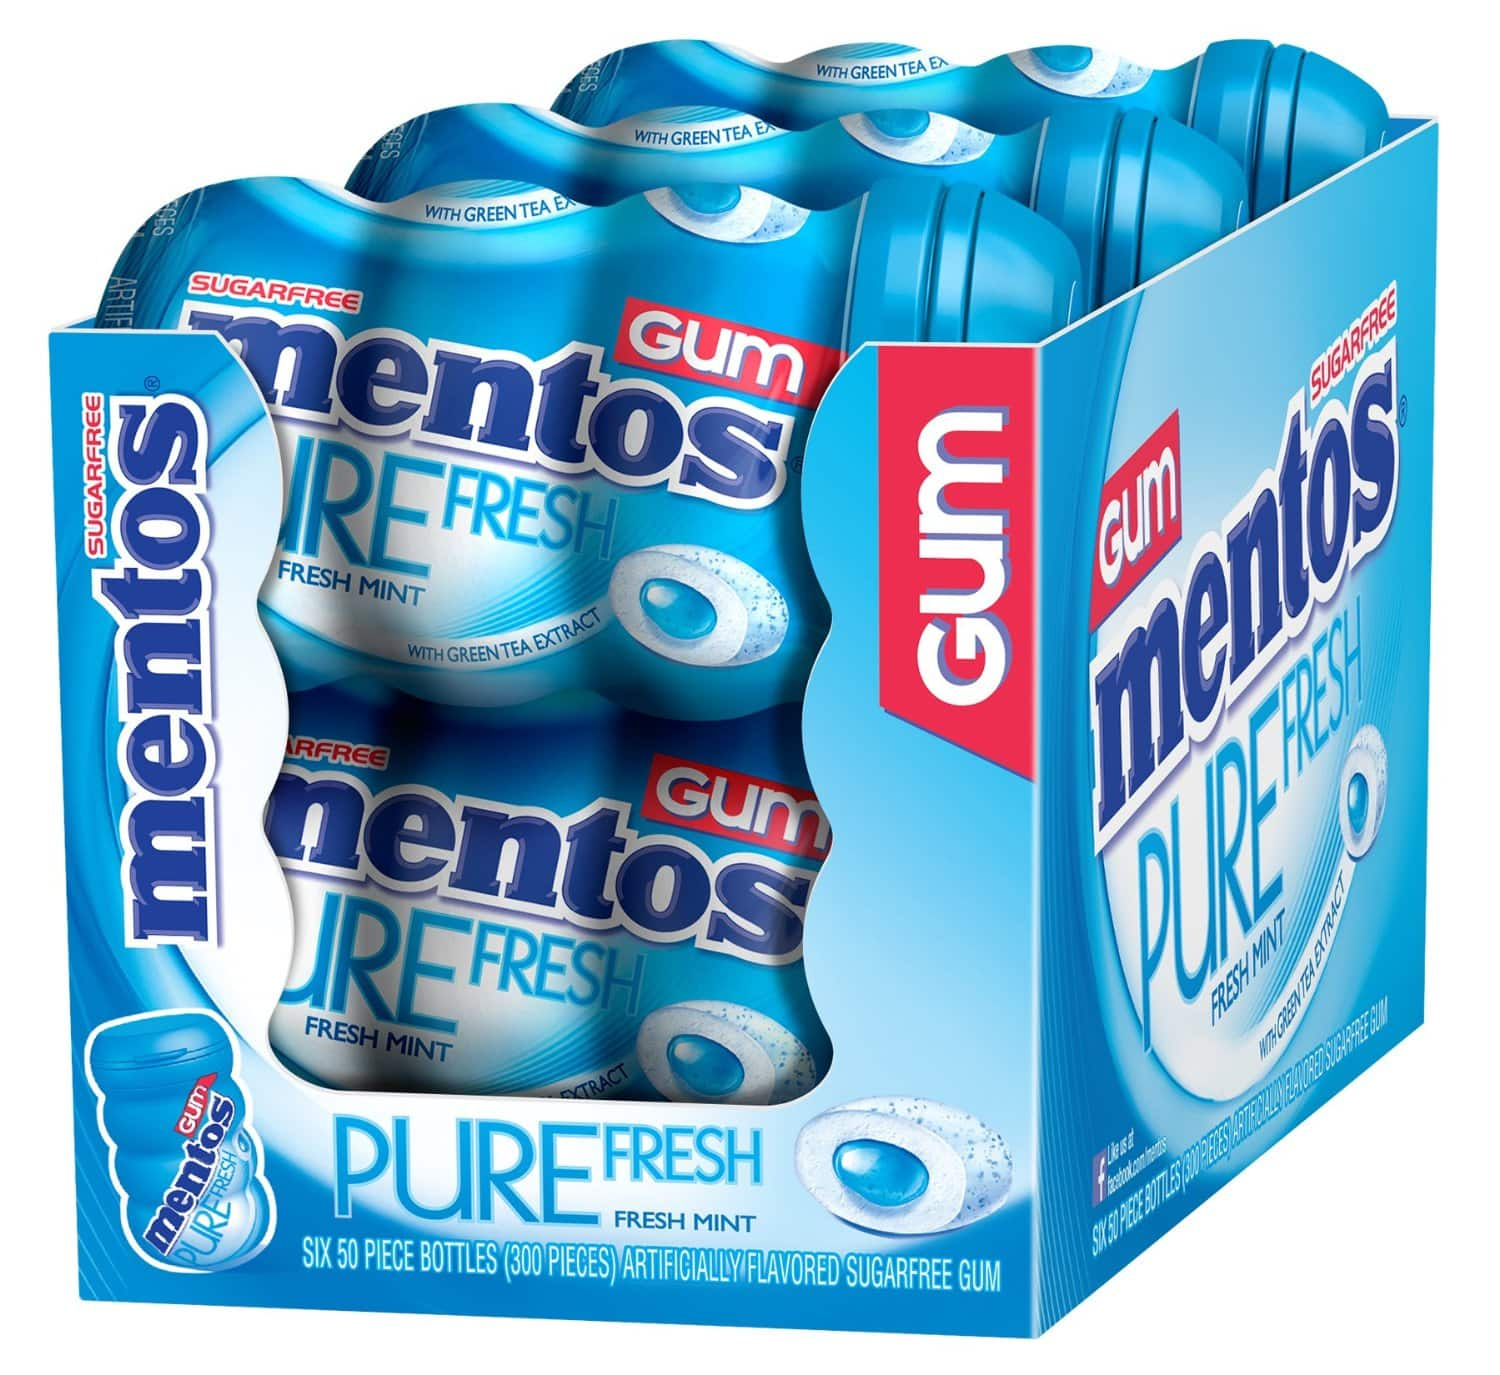 50-Pieces Mentos Gum Big Bottle (Various Flavors): 6-Pack $10.88, 1-Pack $2.03 or Less + Free Shipping Amazon.com